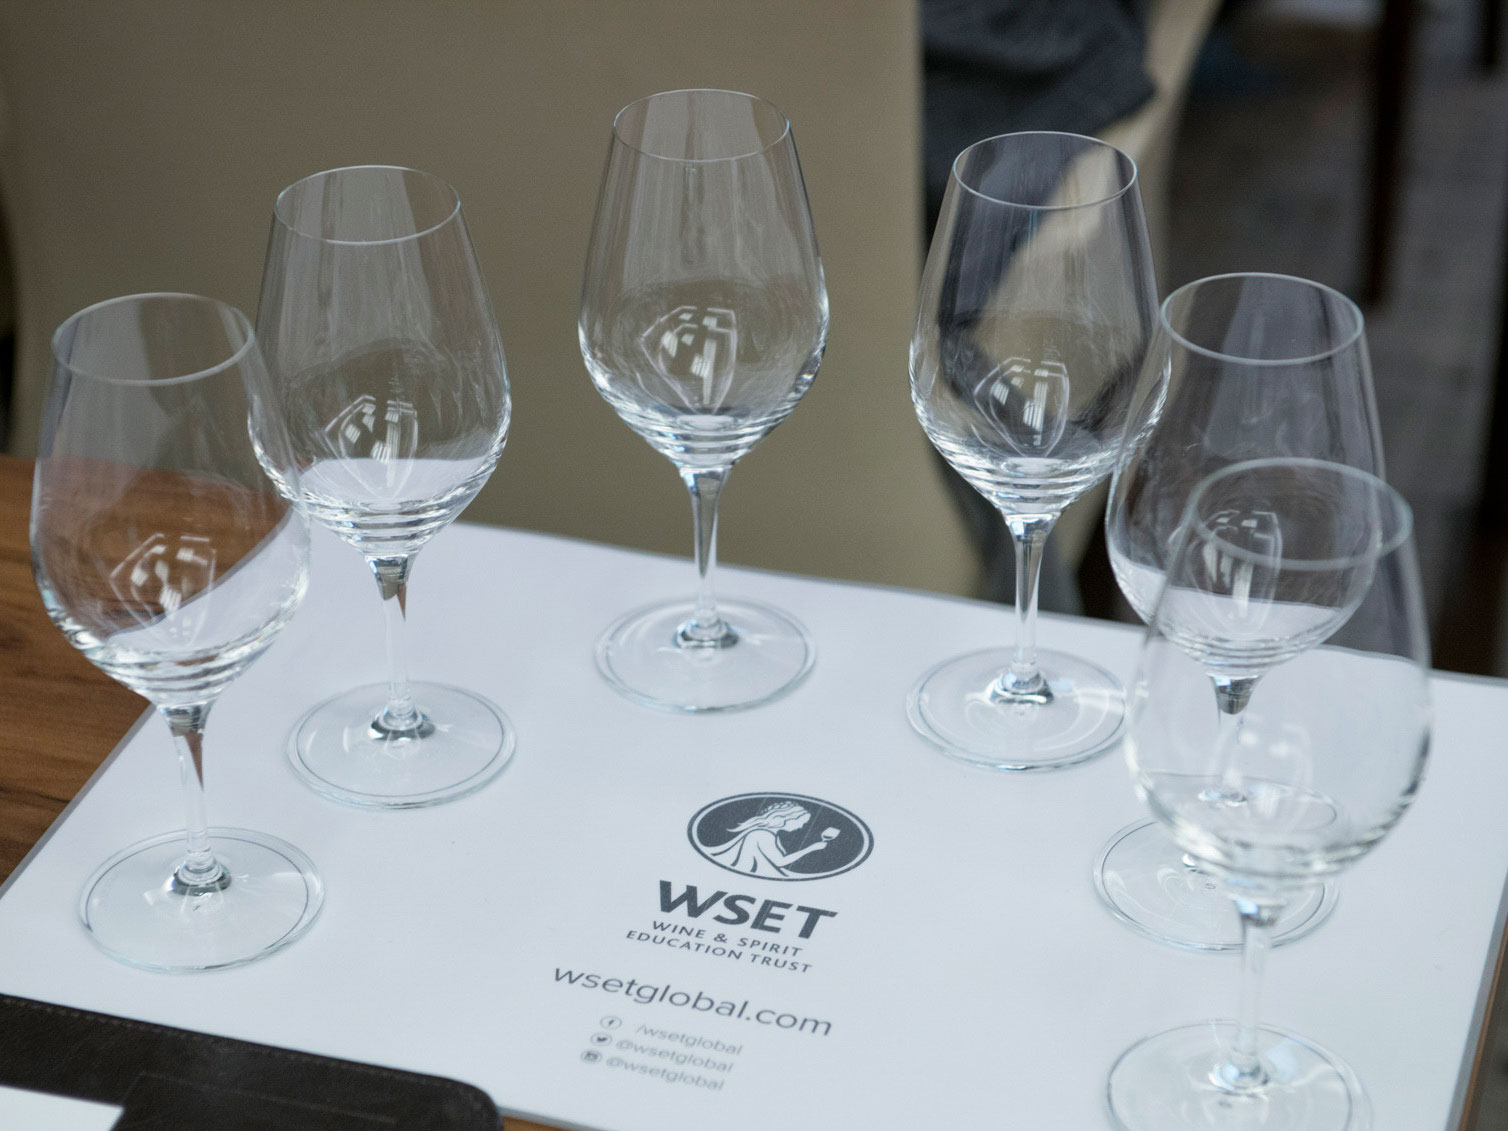 Kurs WSET - LEVEL 2 - kieliszki